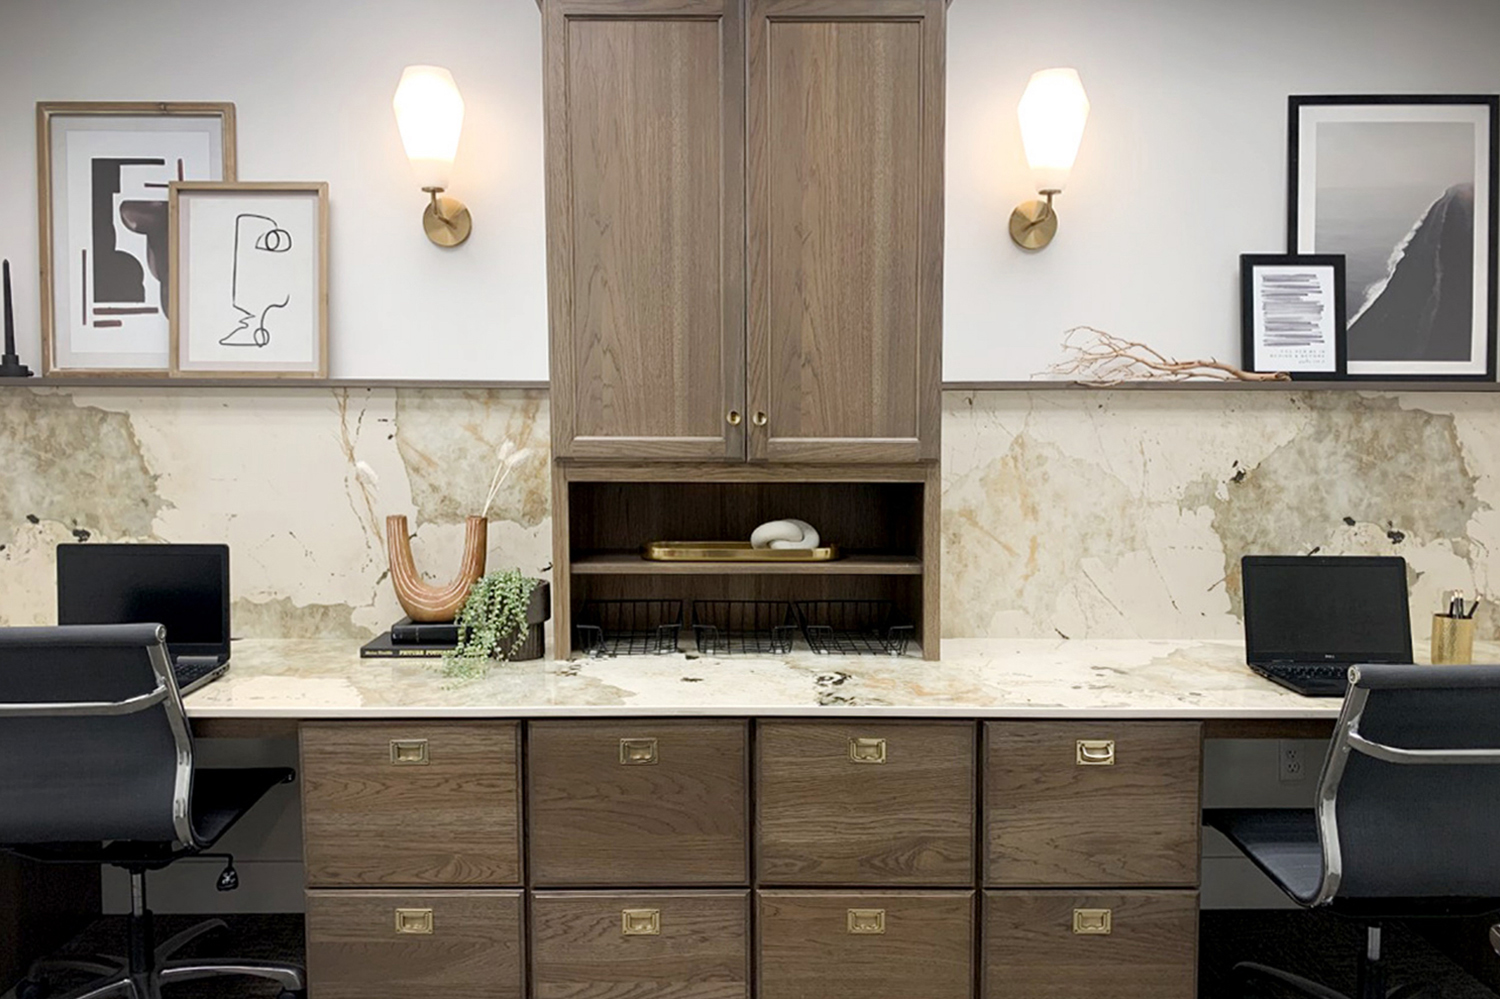 Image of office with built-in cabinets and marble countertop